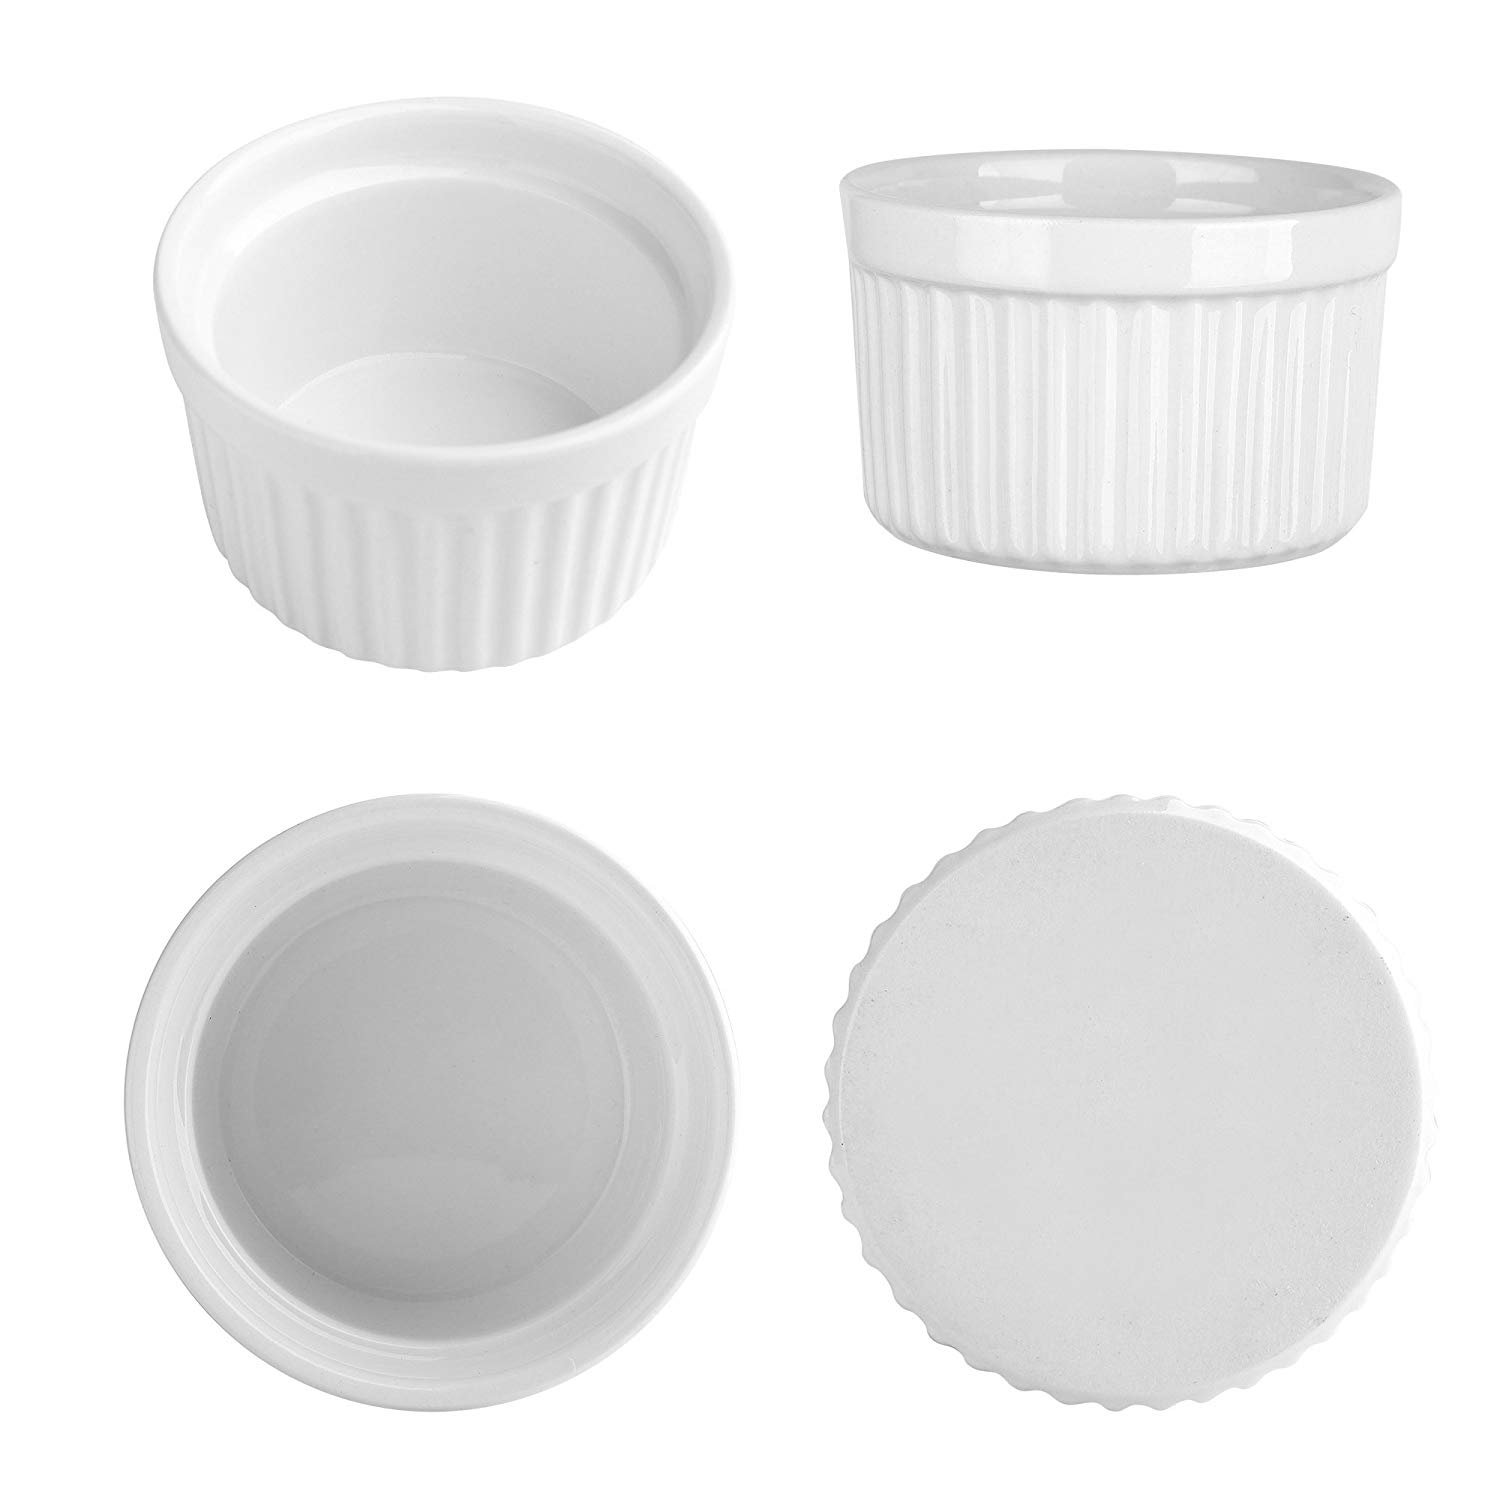 4 oz. Porcelain Ramekins, Porcelain Souffle Dishes, Ramekins for Souffle, Creme Brulee and Dipping Sauces - Set of 8, White by MAMA-AI (Image #2)